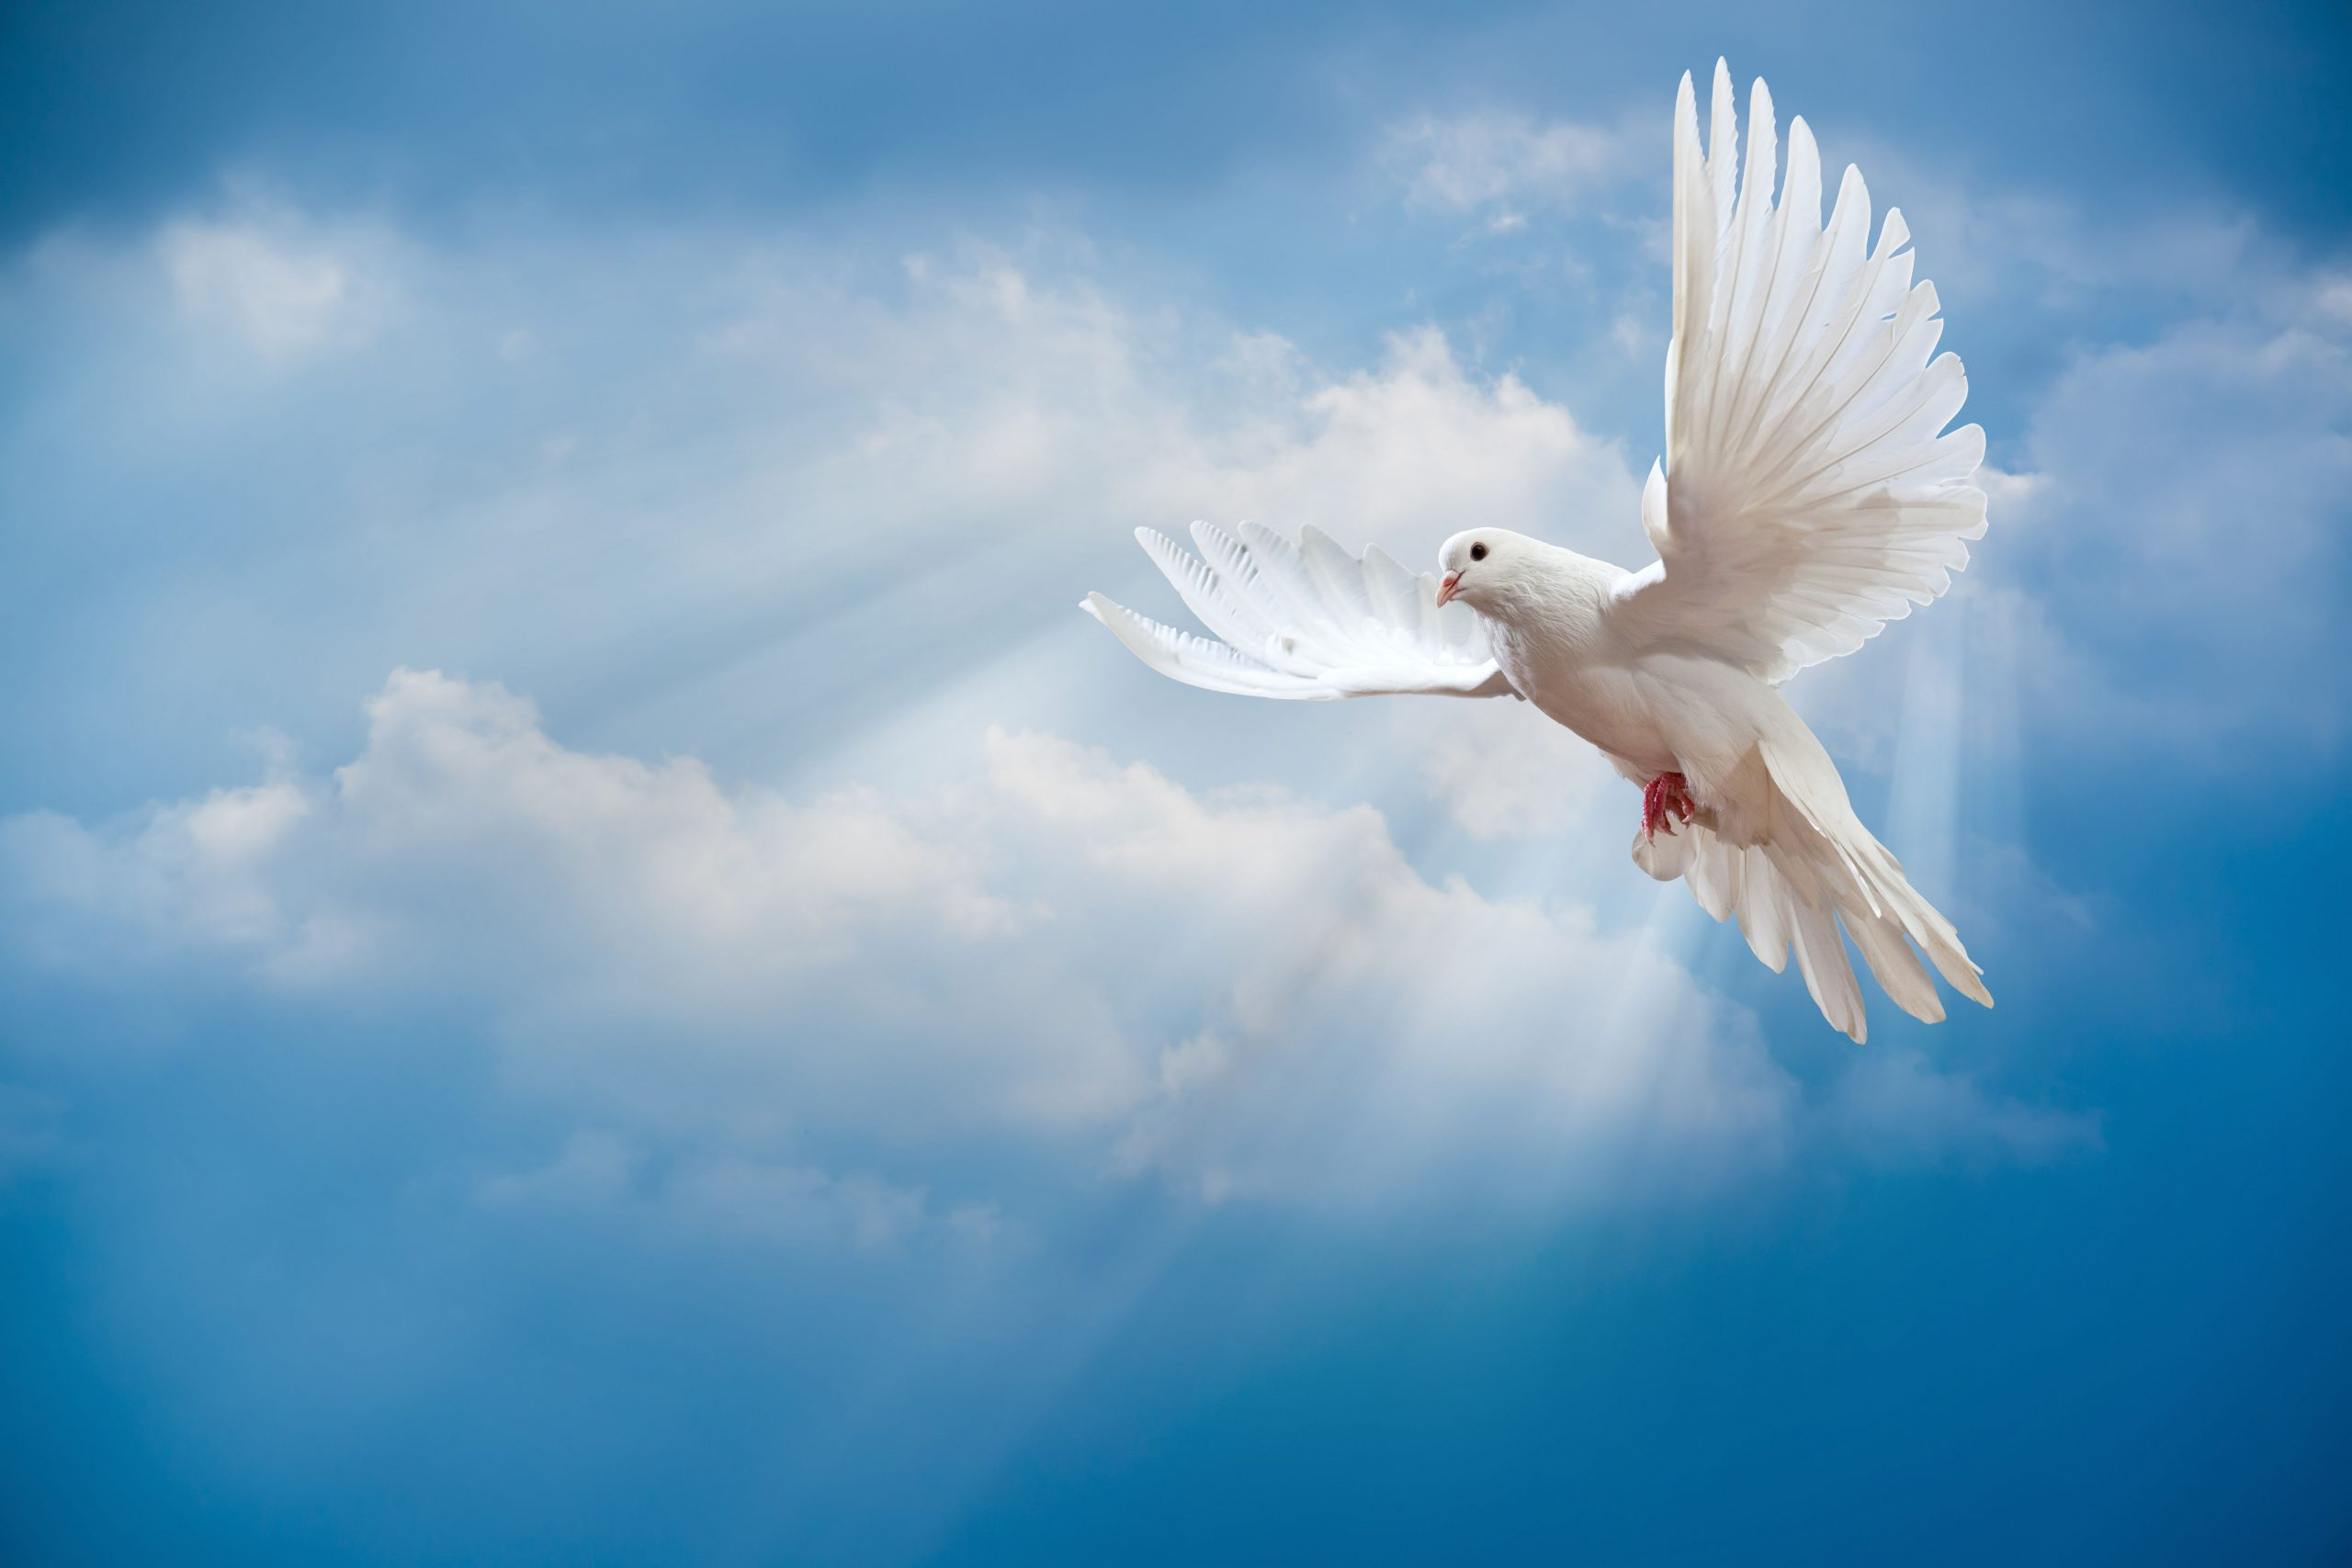 Making peace after death